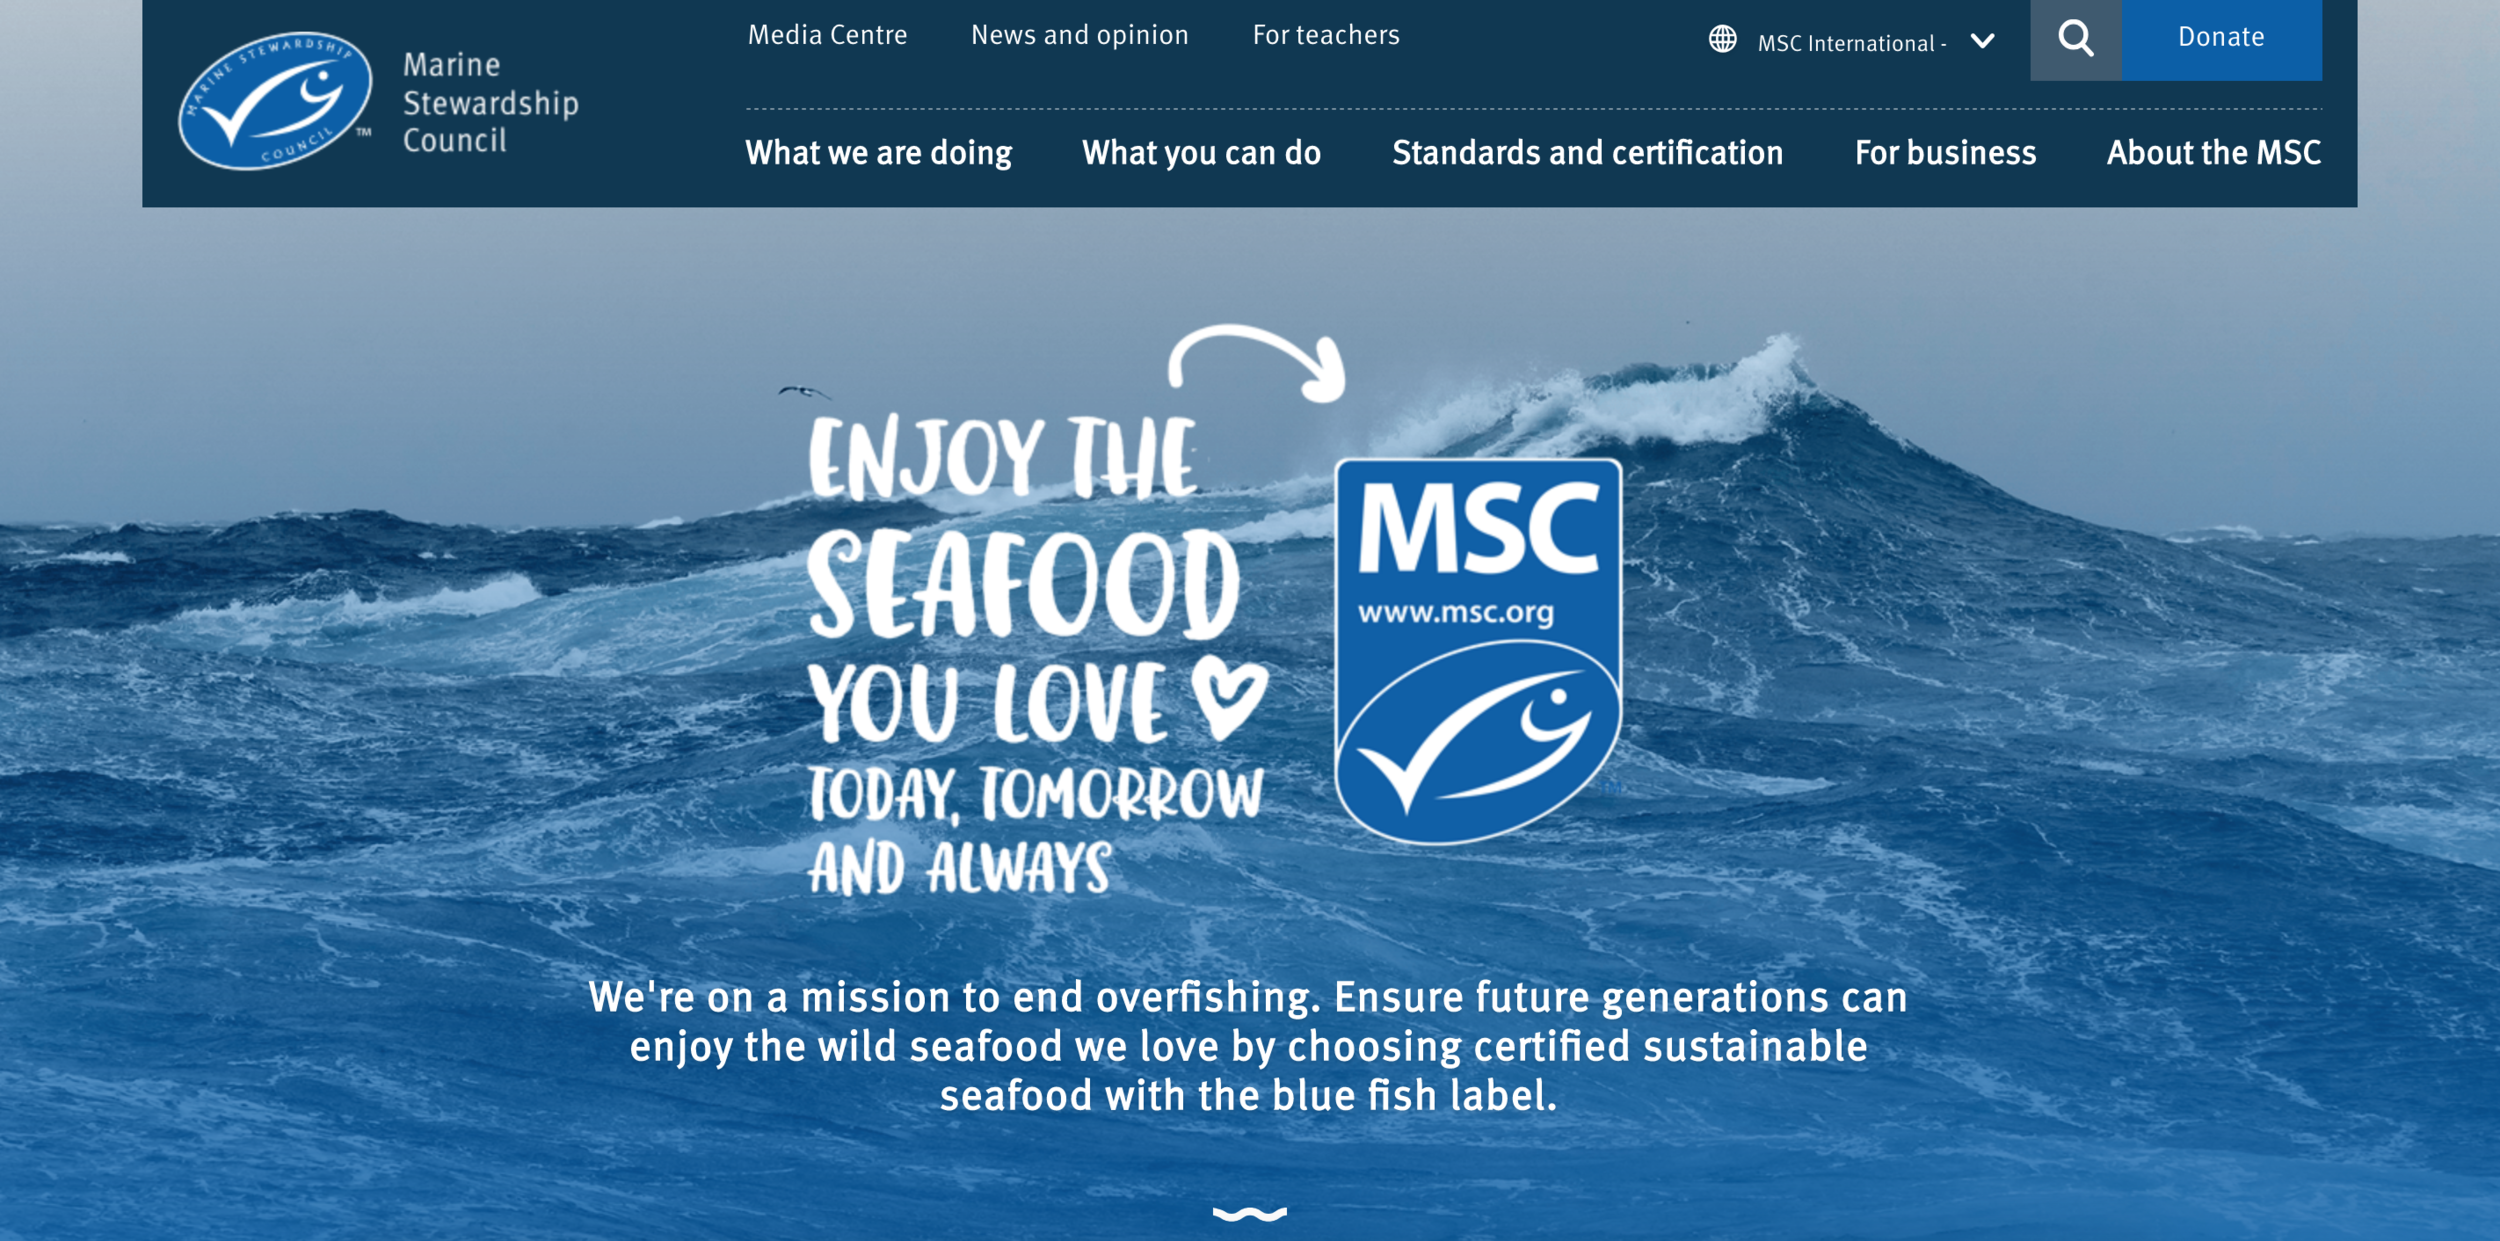 Screen Shot 2019-03-06 at 07.47.56.png